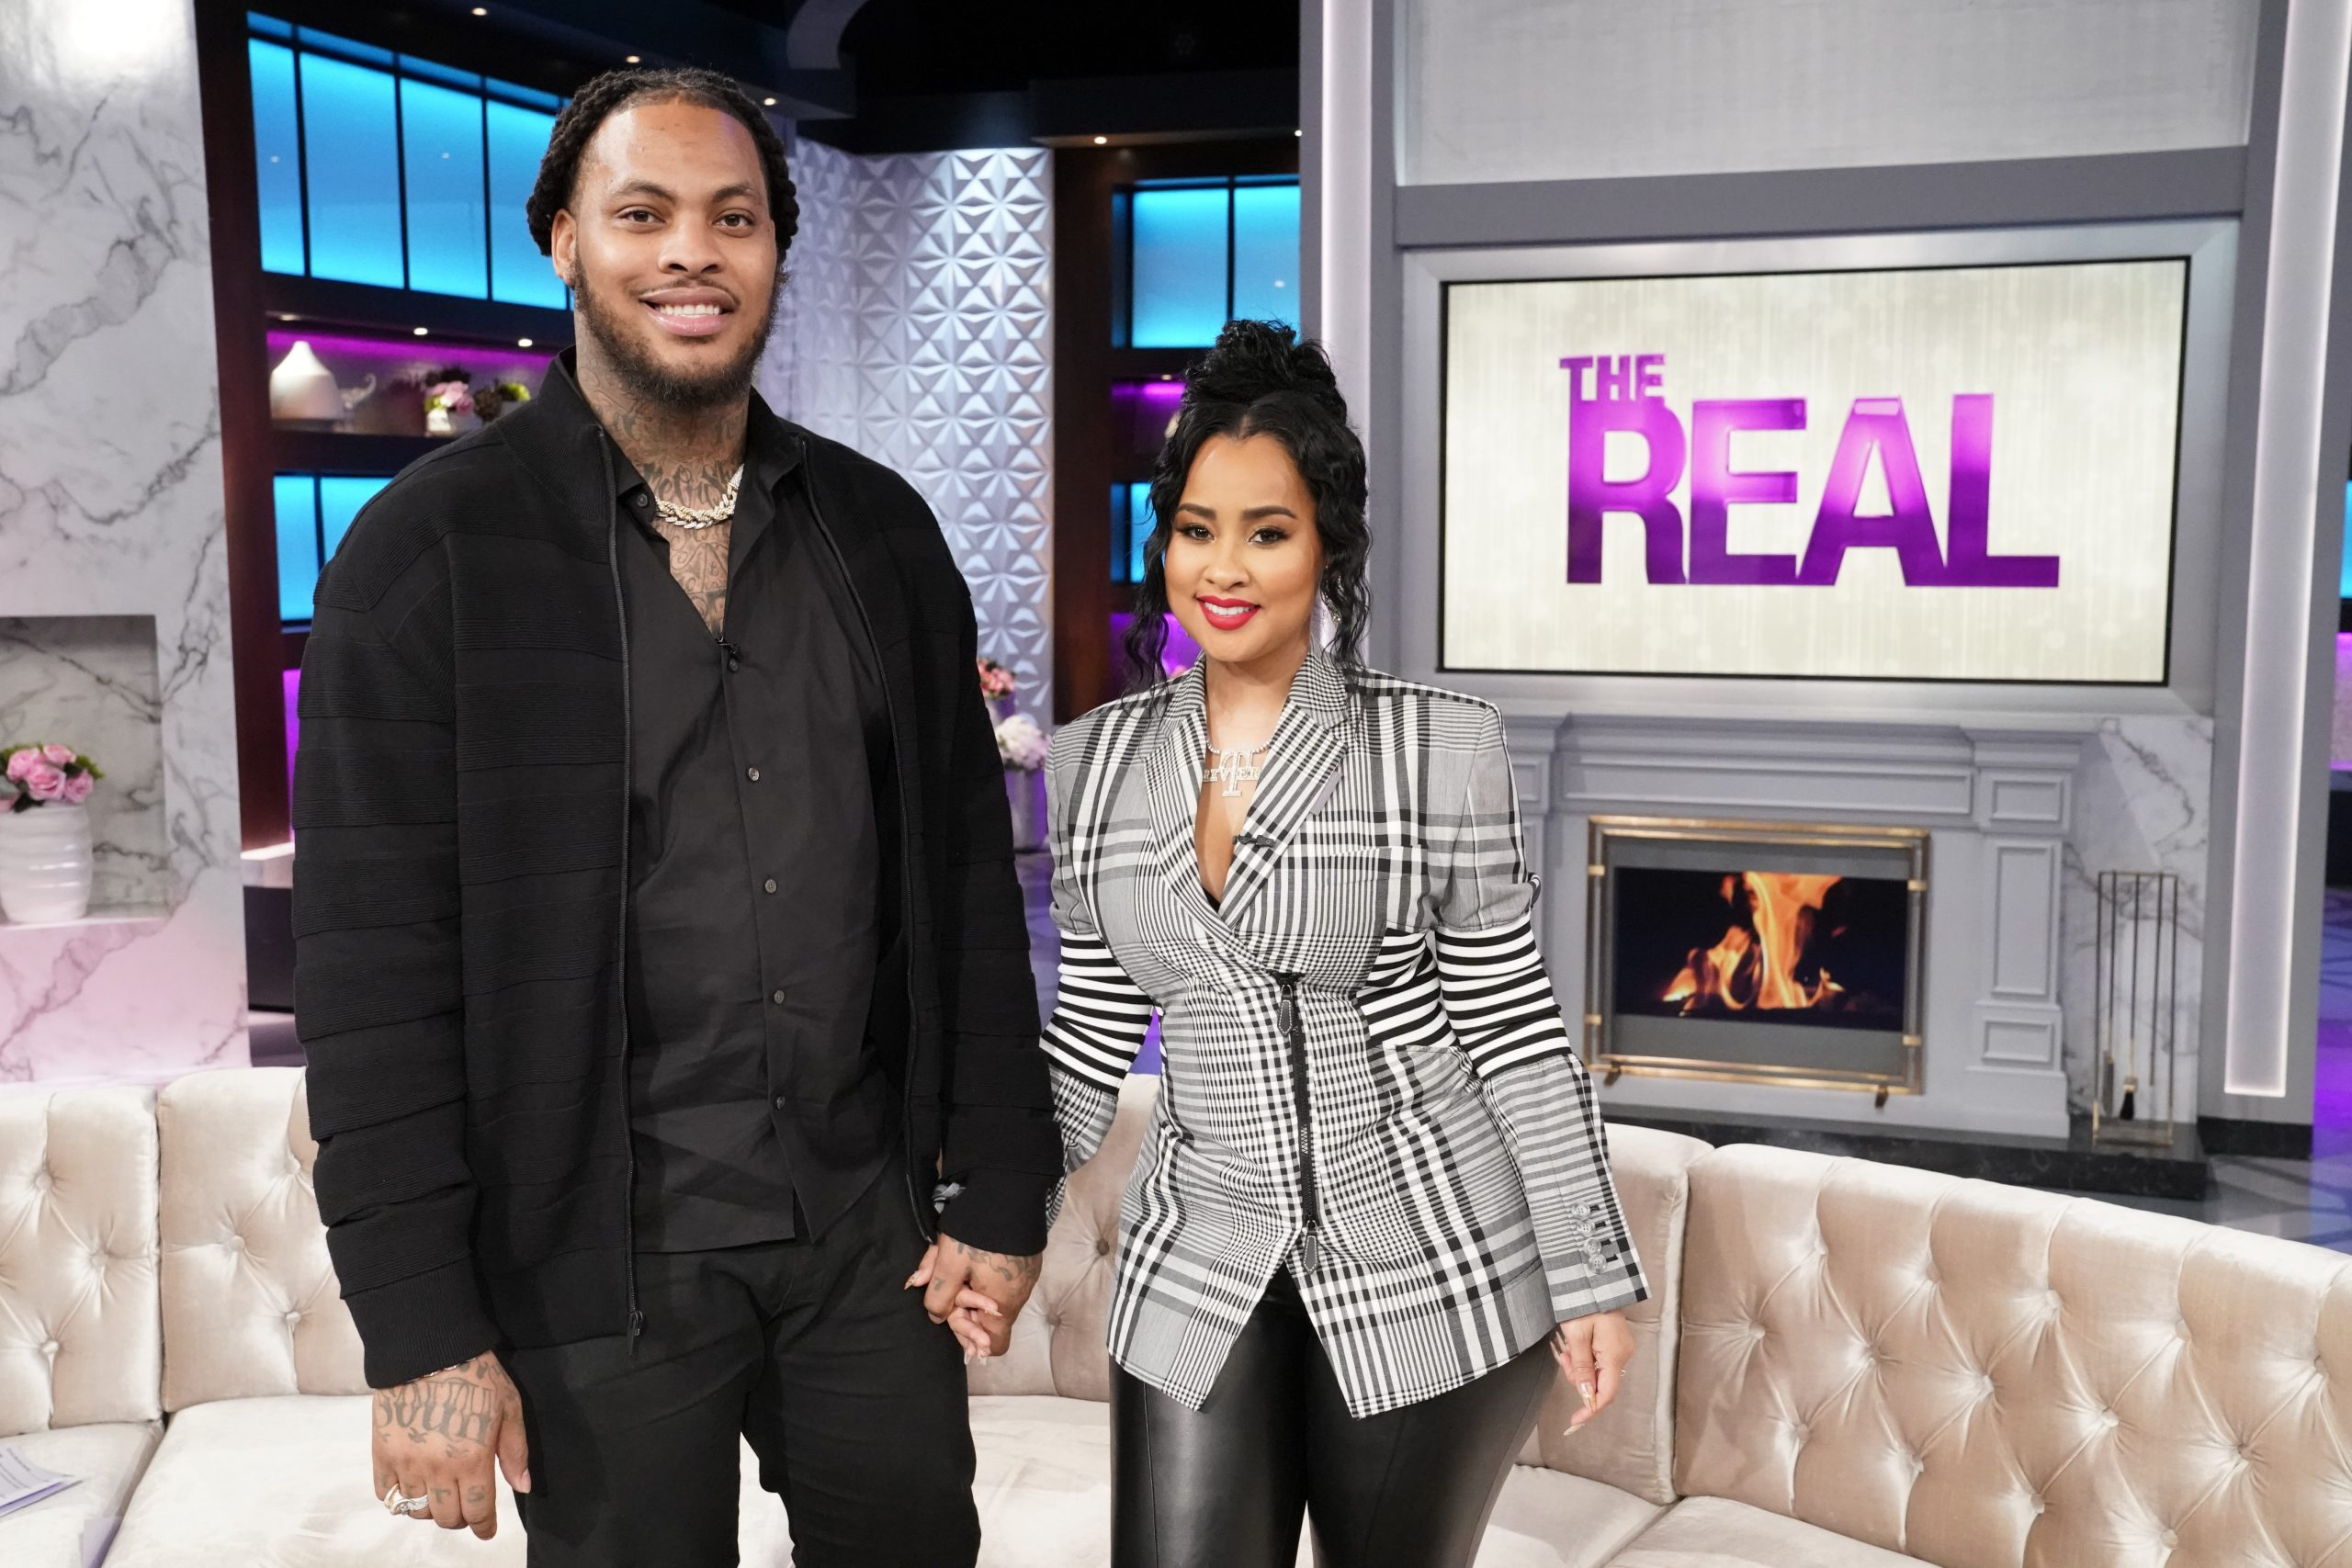 Wacka Flocka And Tammy Rivera Stop By The Real, Waka Wants To Be A Better Example For His Community